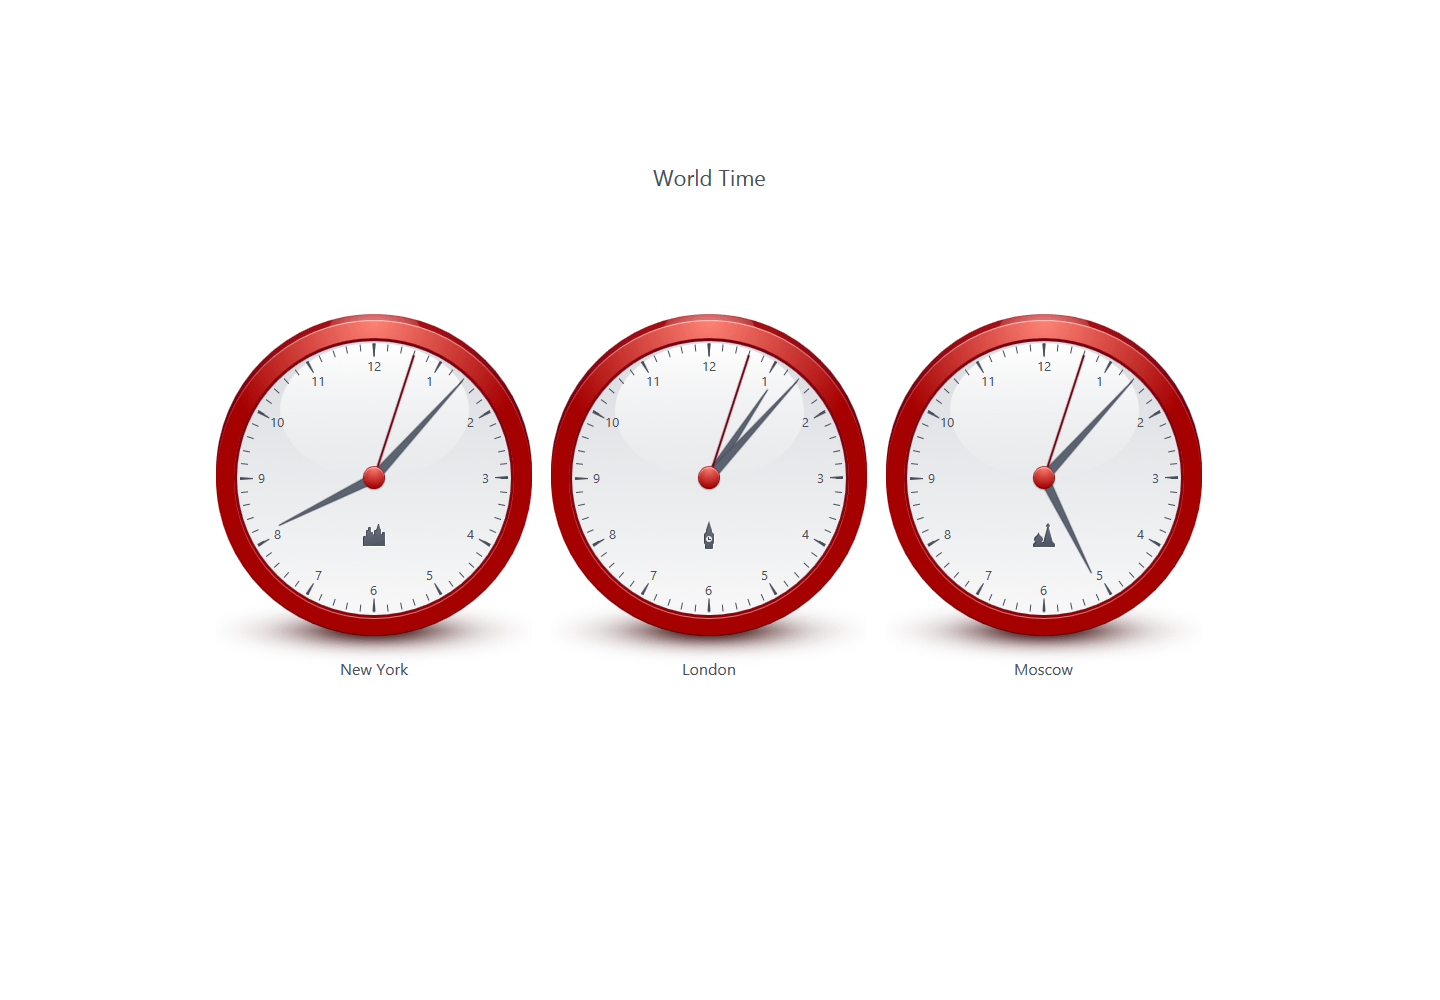 WPF Circular Gauges - World Time